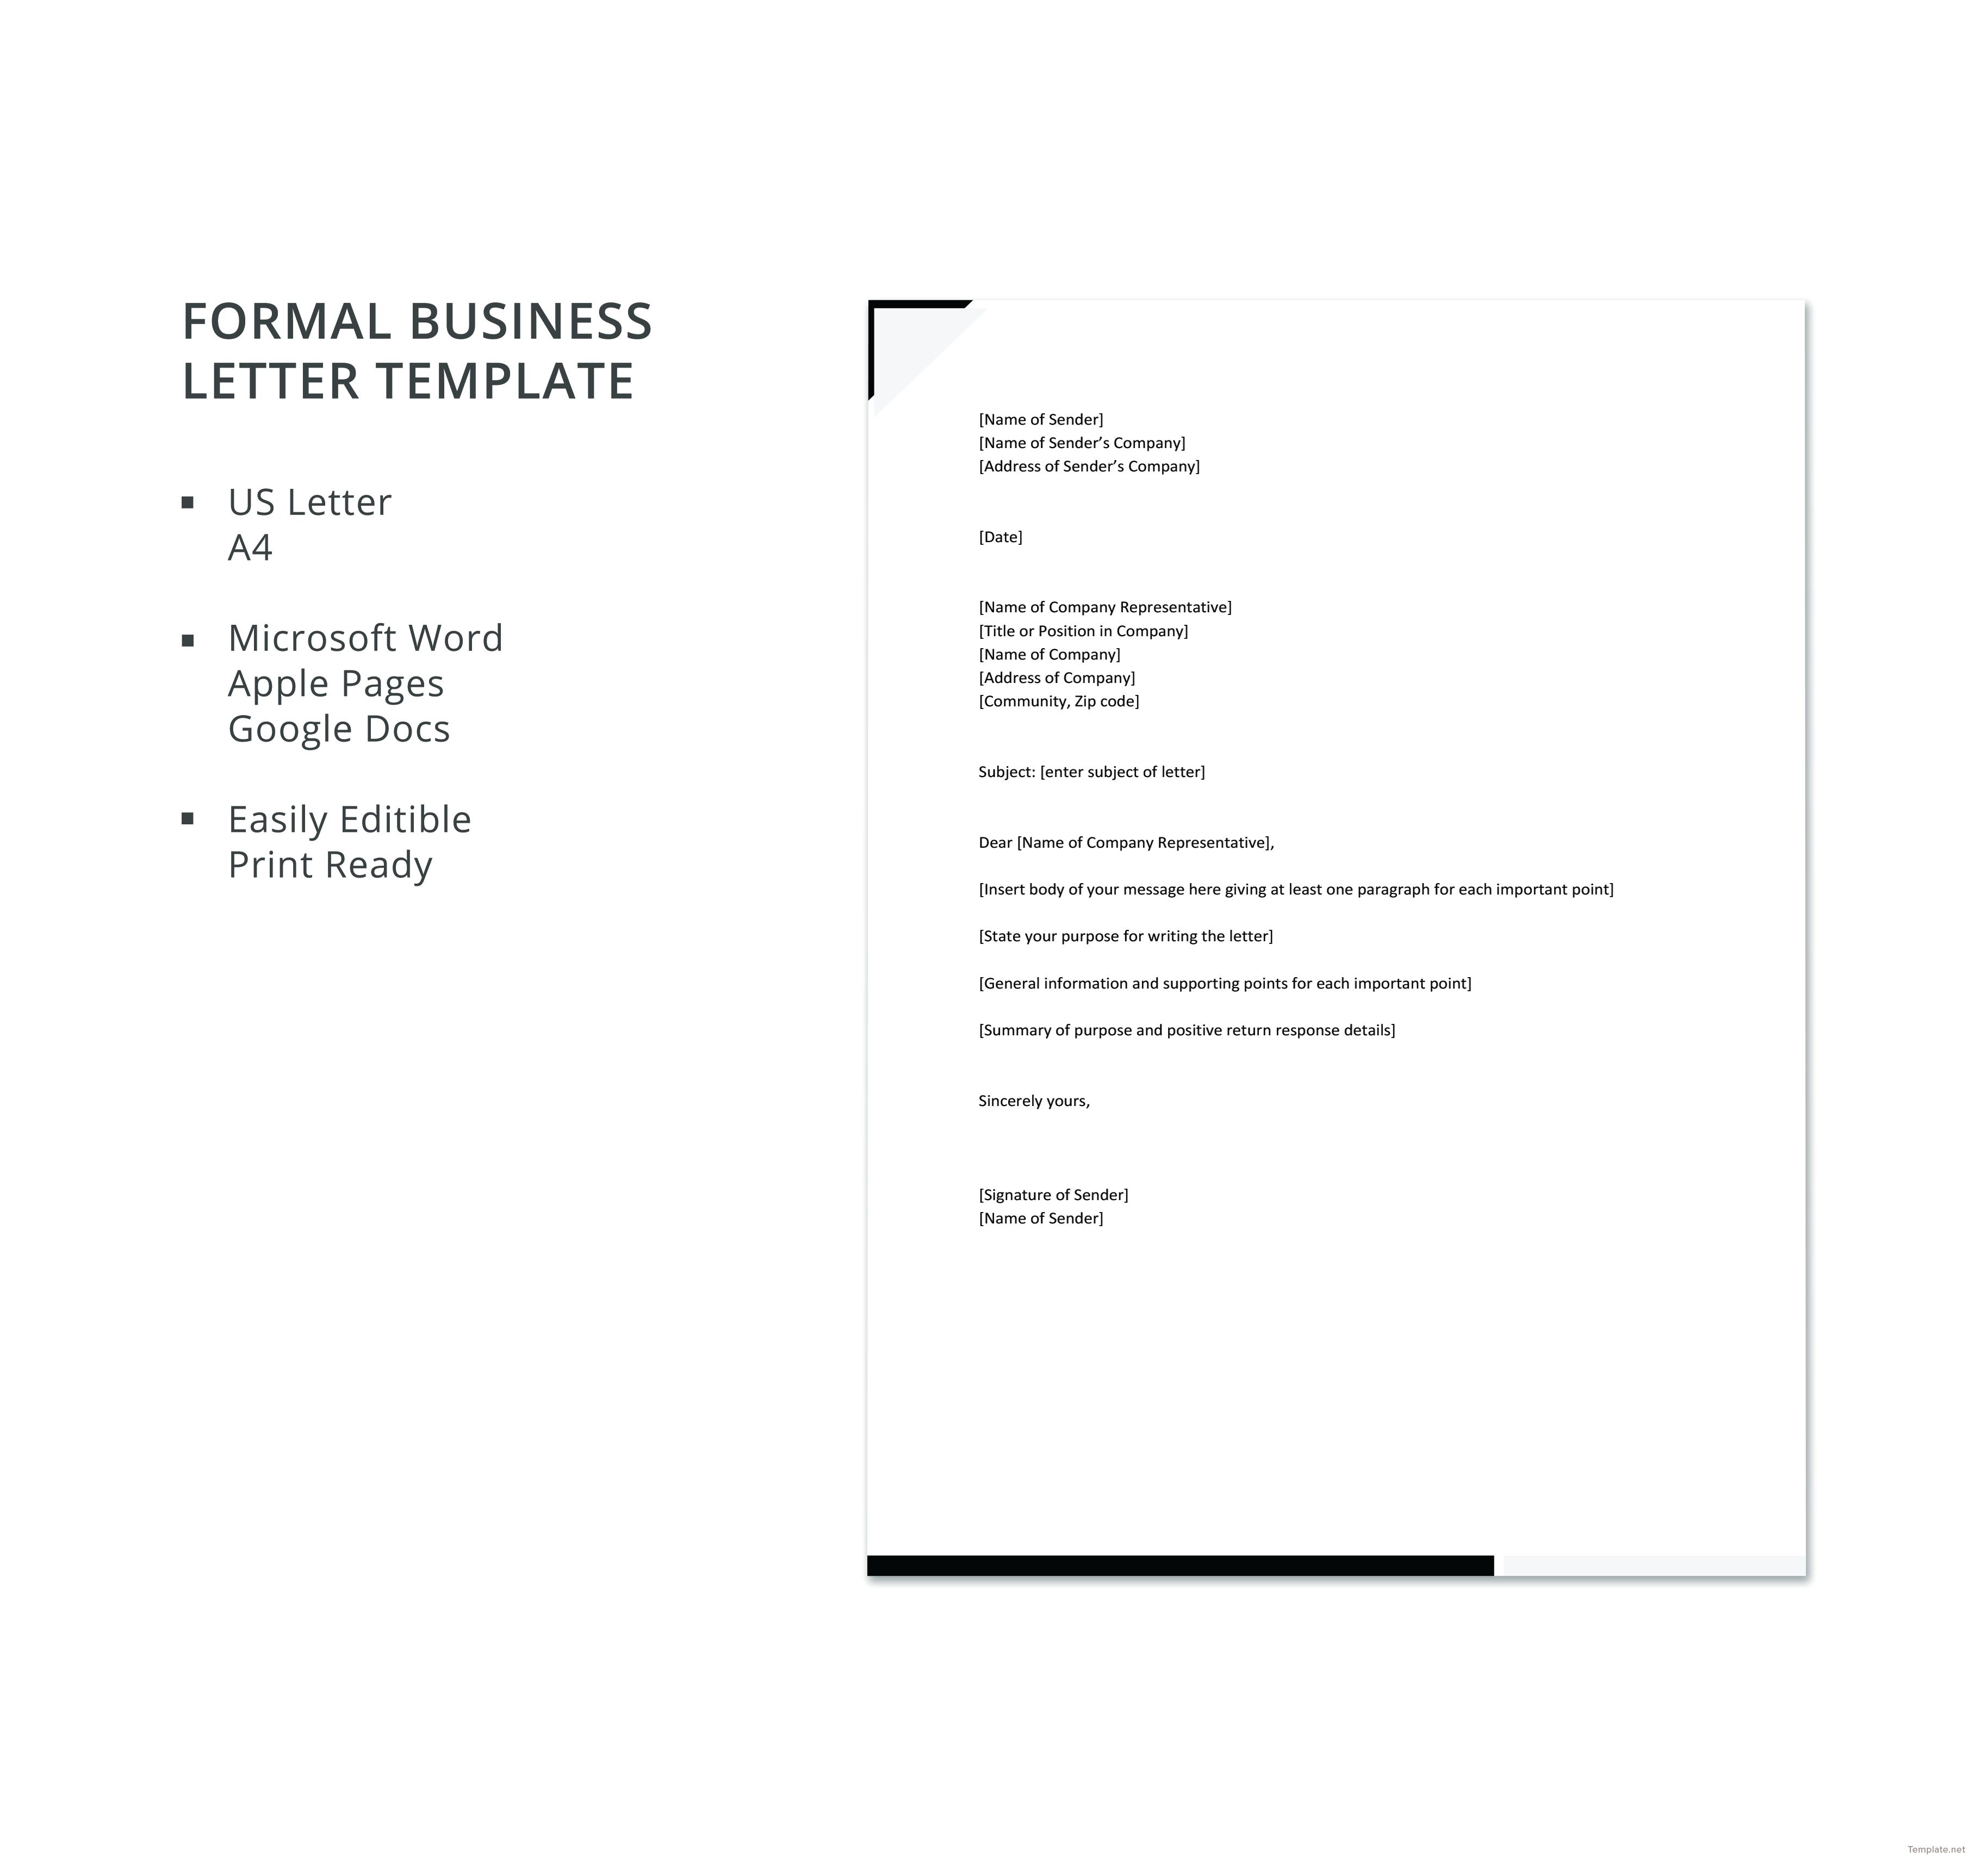 Free Formal Business Letter Template Business letter